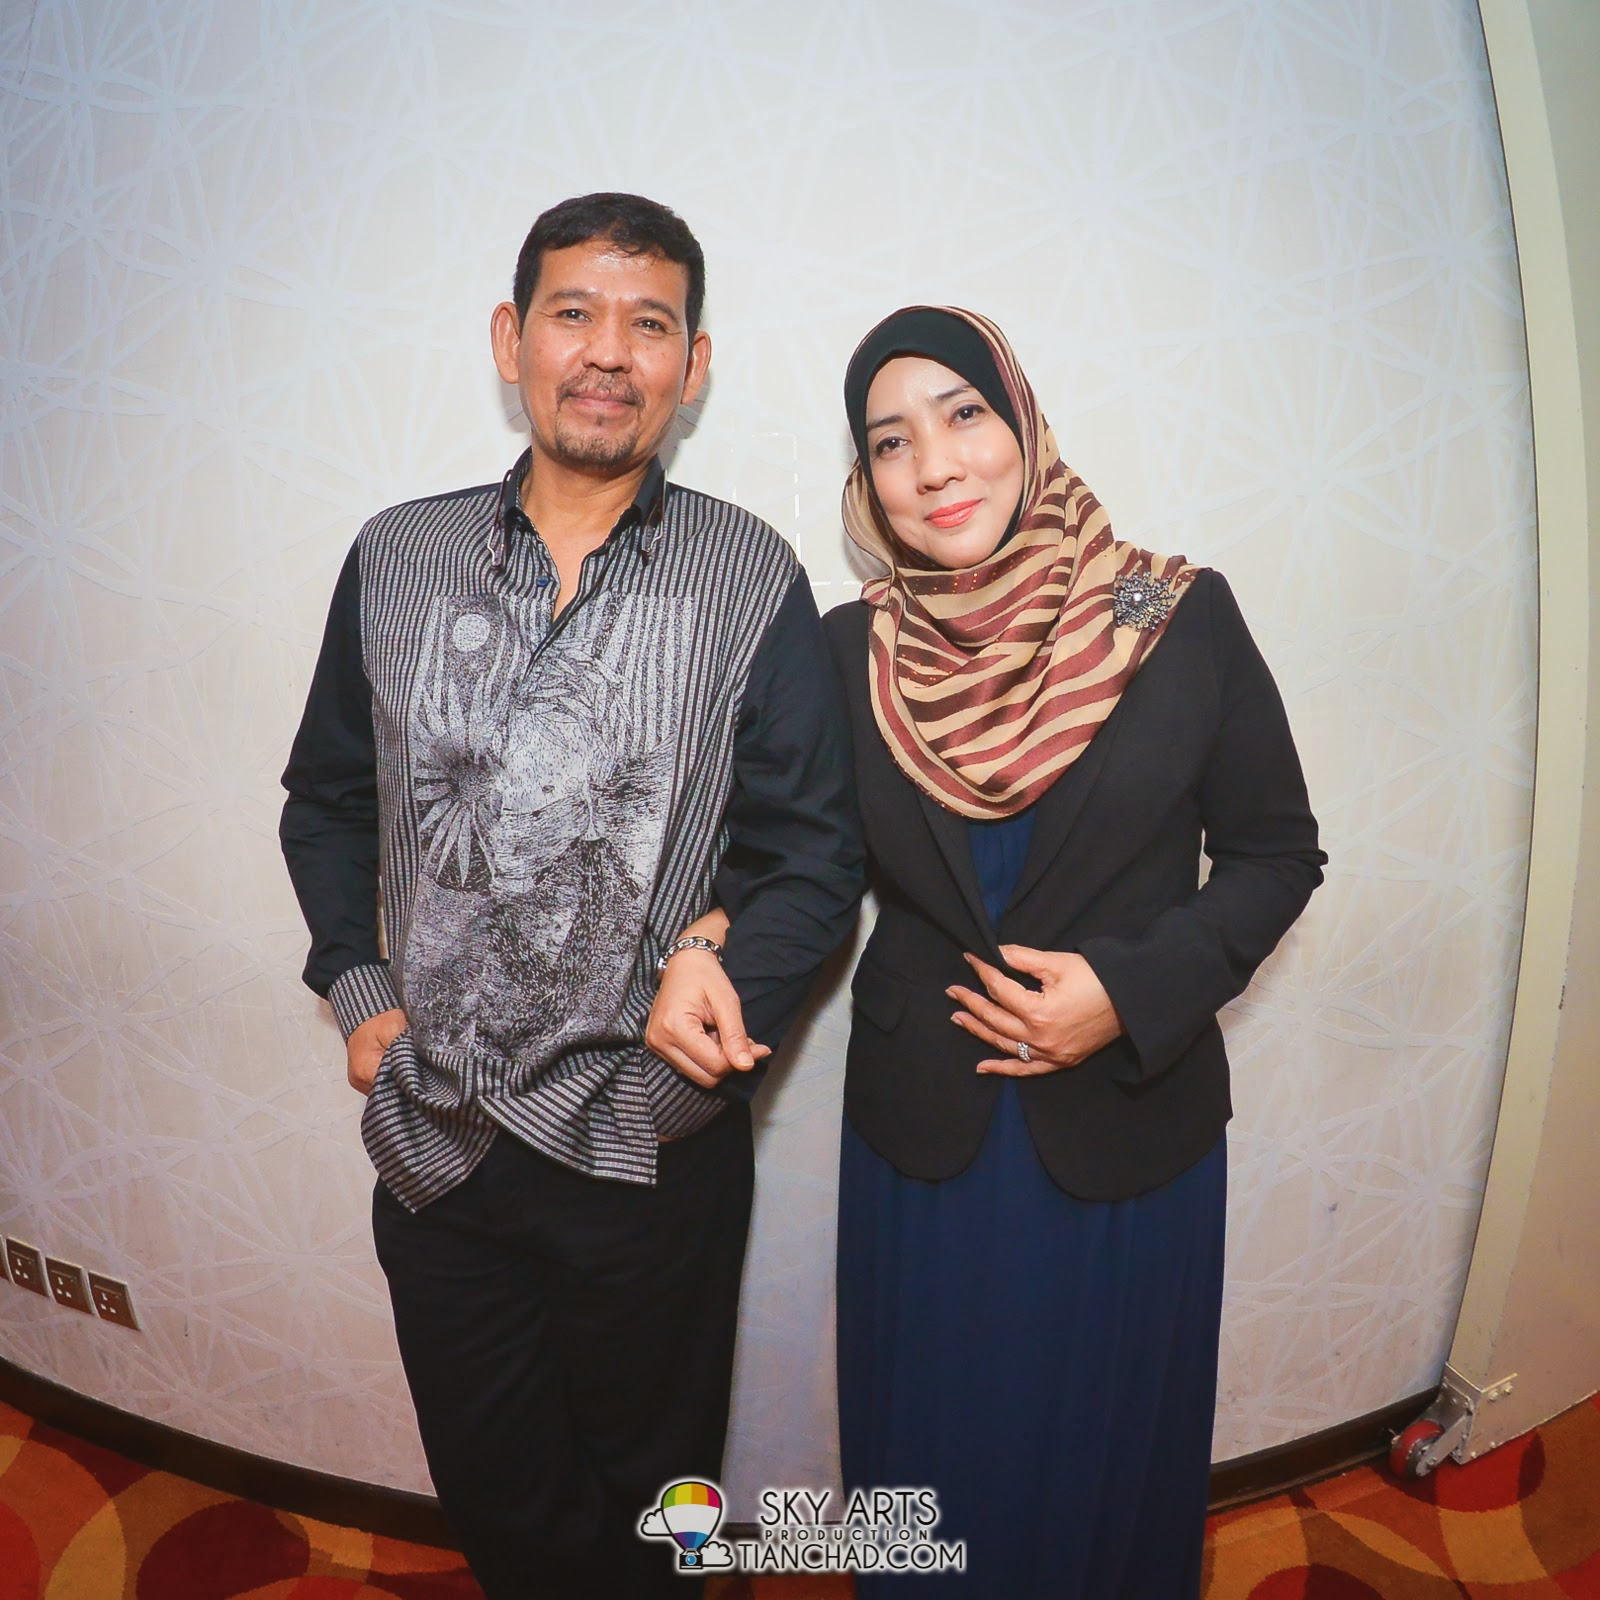 Shila Amzah's parents who has been very supportive in her music career